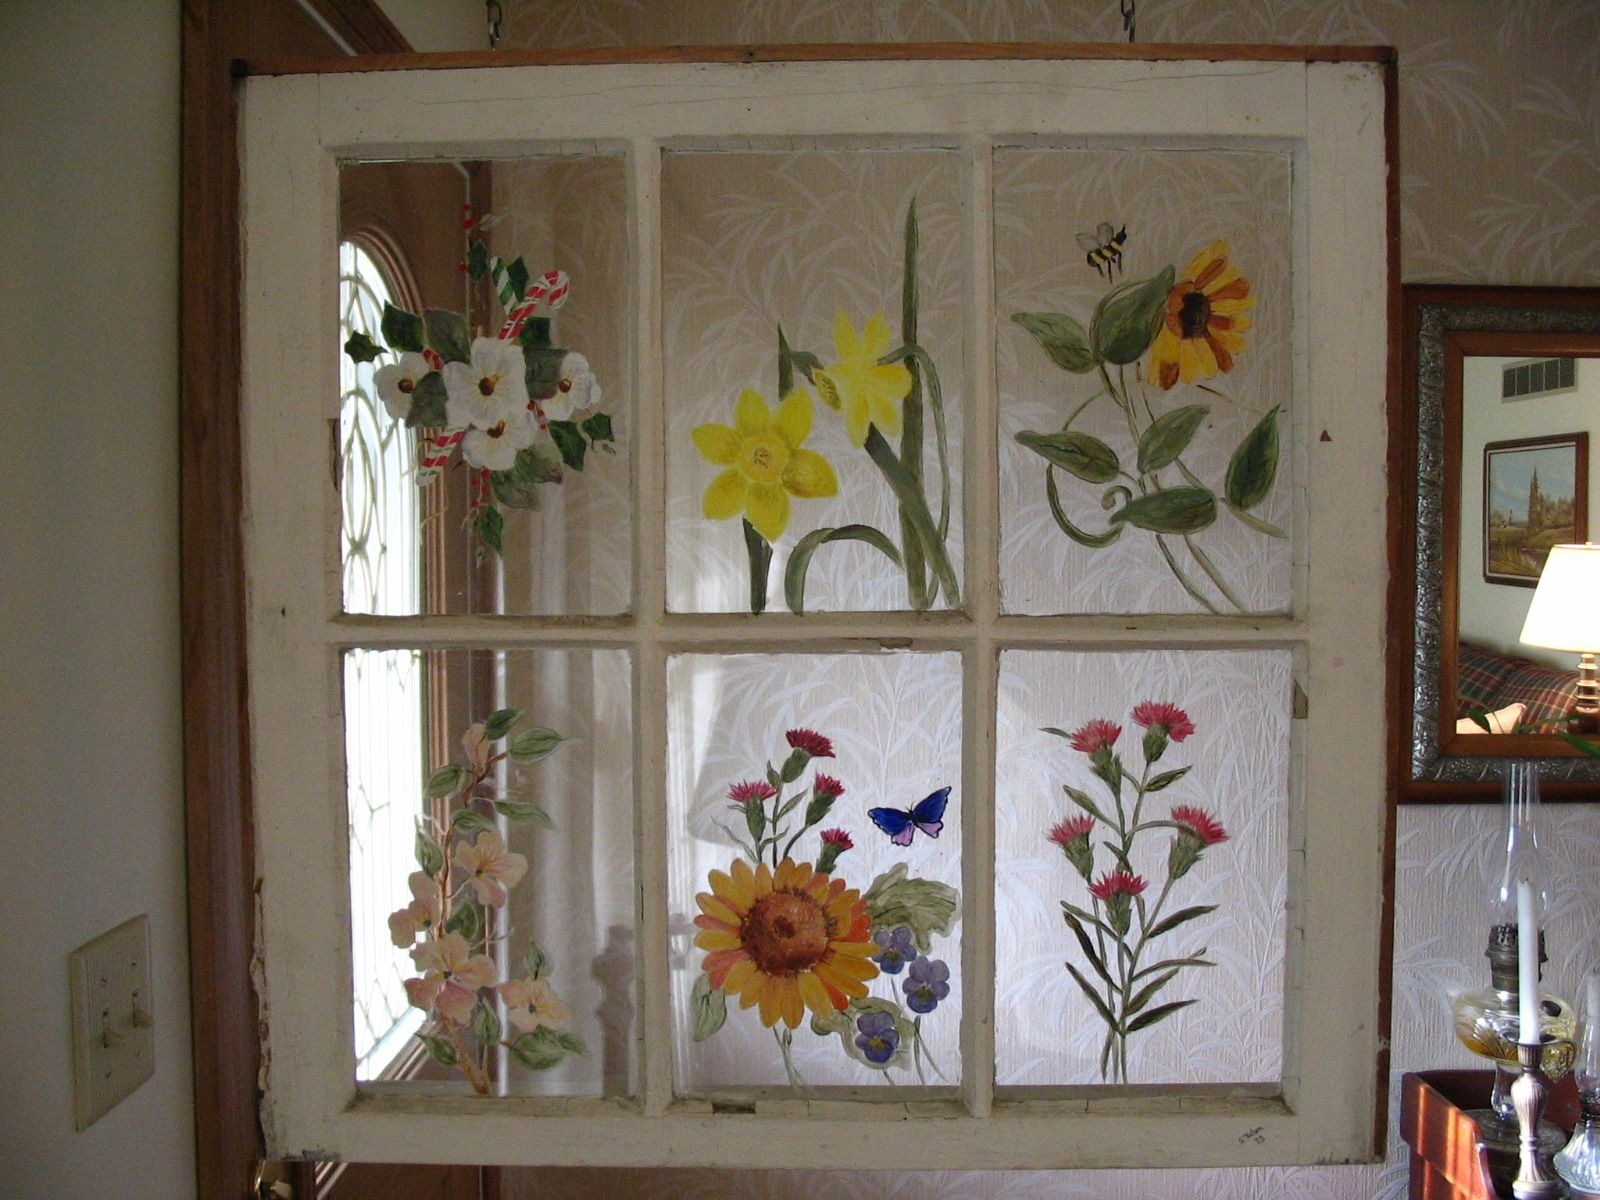 Painted Old Window Painted Window Panes Painting On Glass Windows Old Window Art